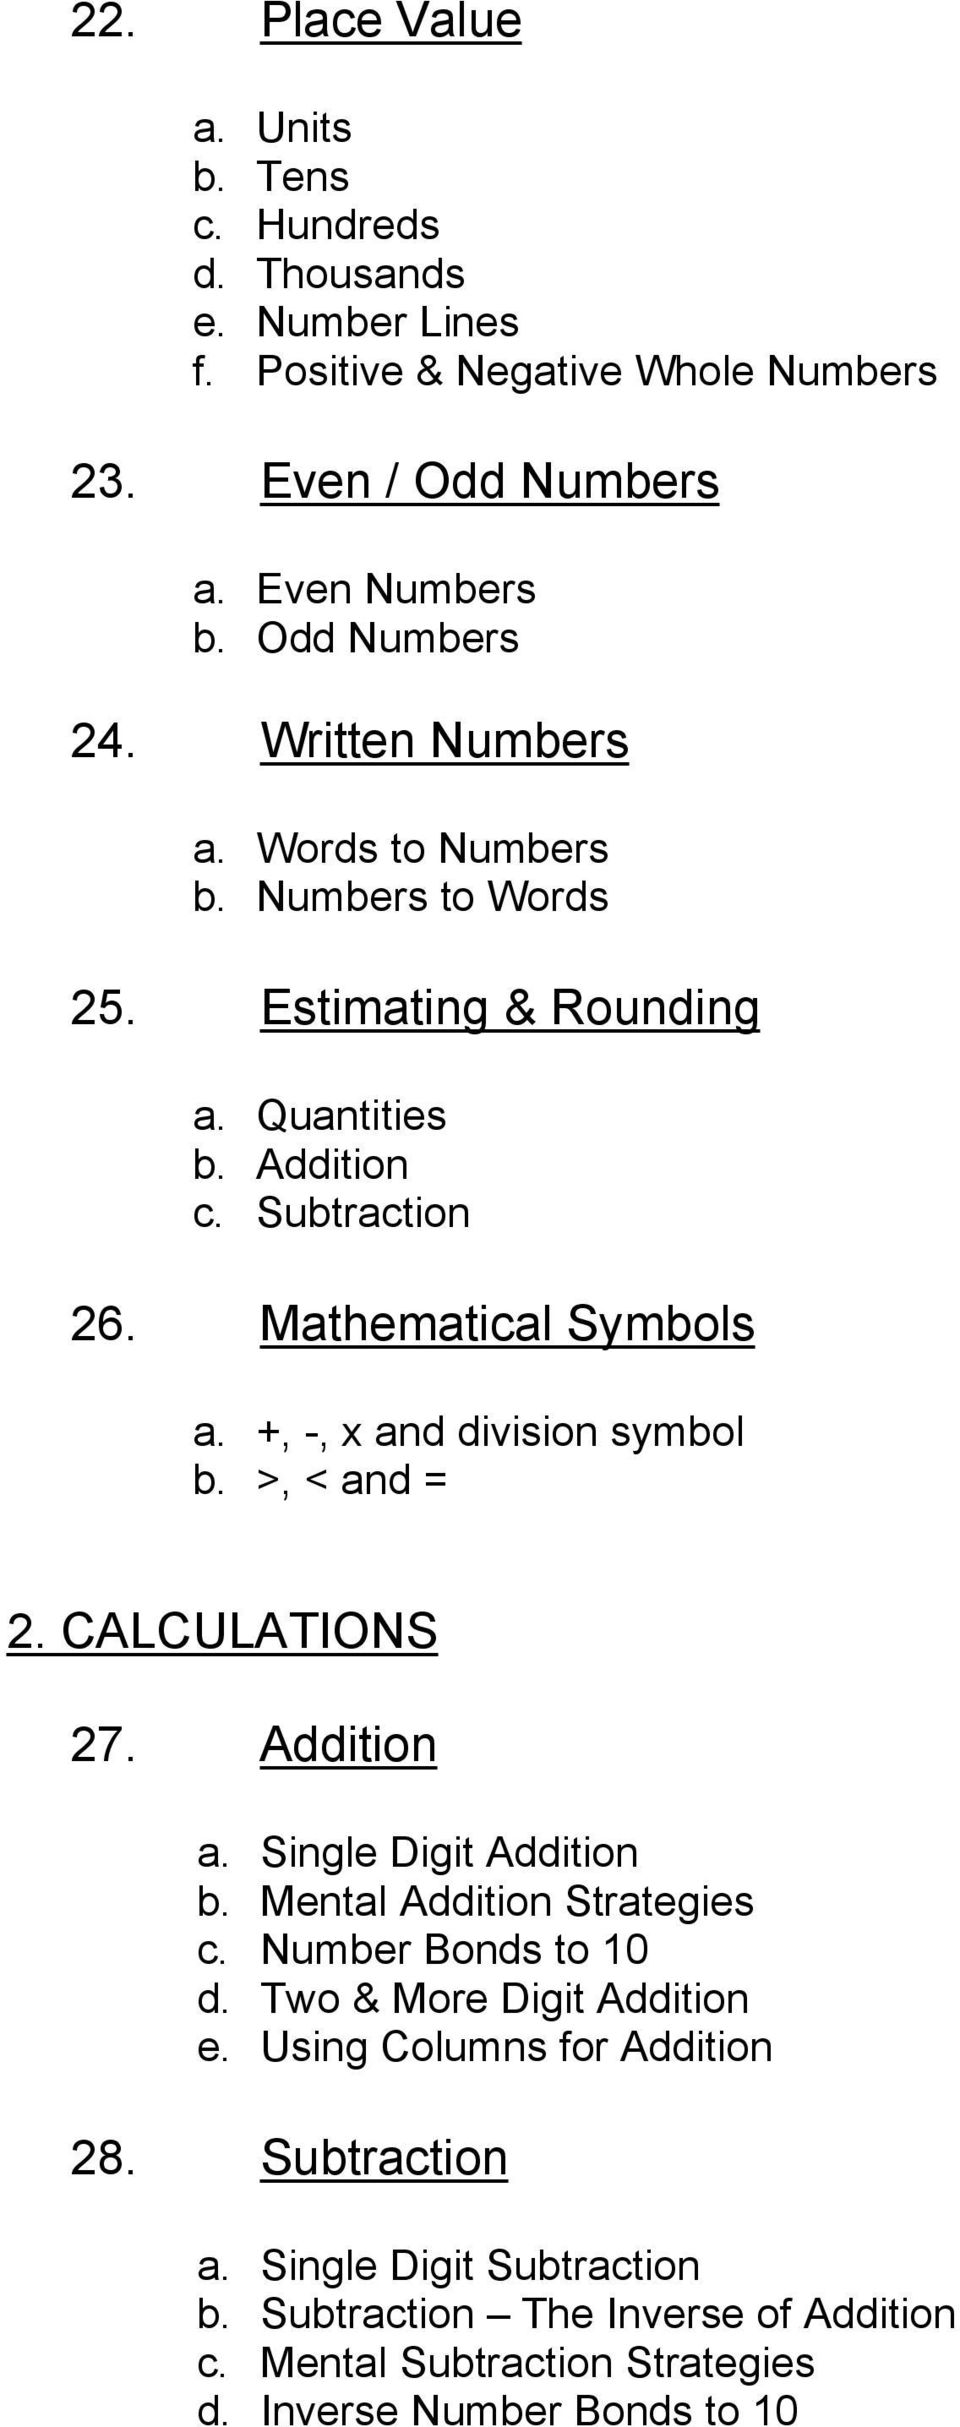 +, -, x and division symbol b. >, < and = 2. CALCULATIONS 27. Addition a. Single Digit Addition b. Mental Addition Strategies c. Number Bonds to 10 d.